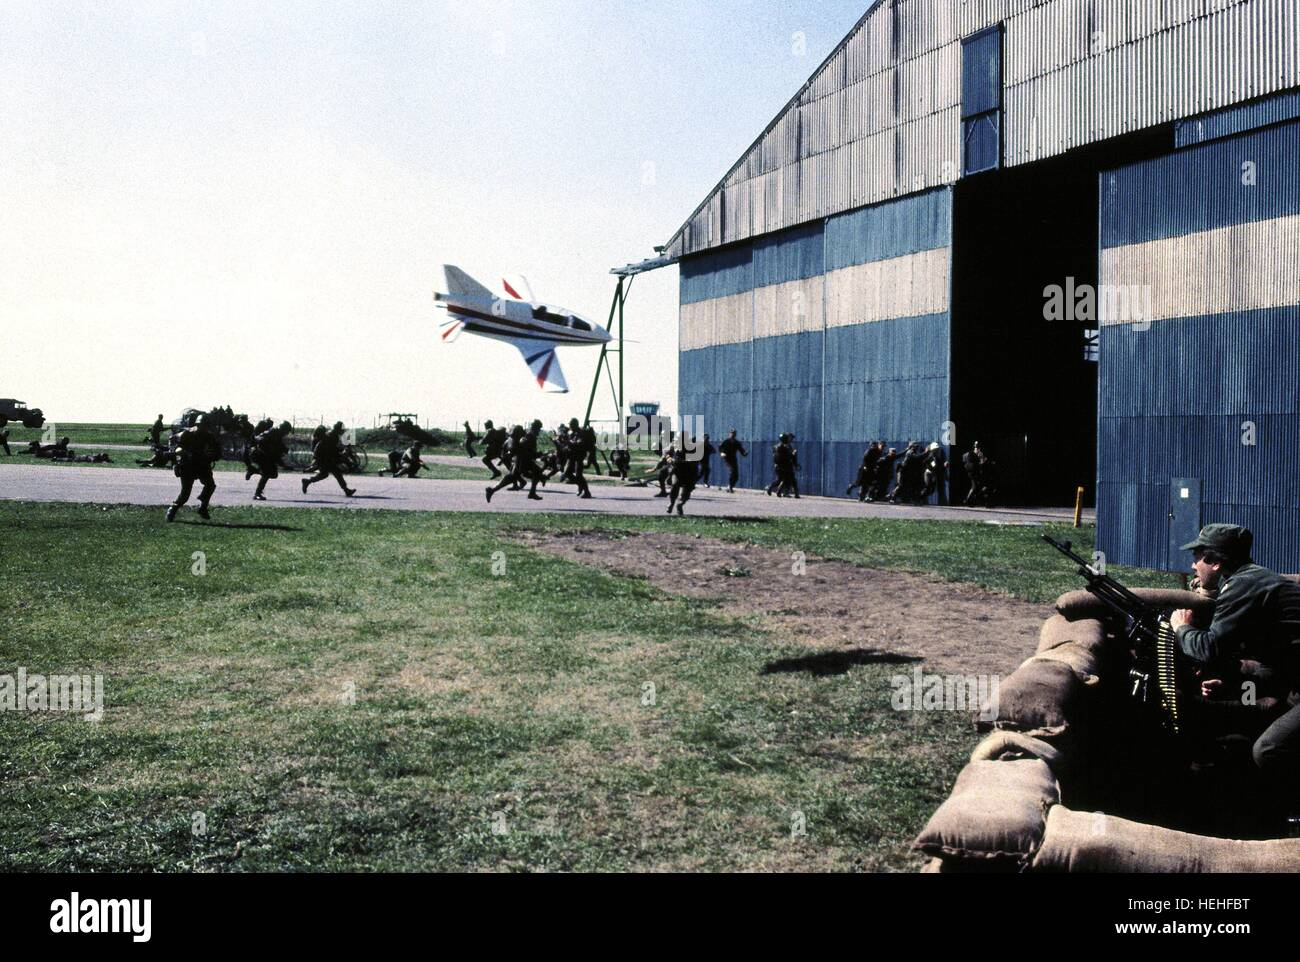 PLANE APPROACHES HANGER JAMES BOND: OCTOPUSSY (1983) - Stock Image